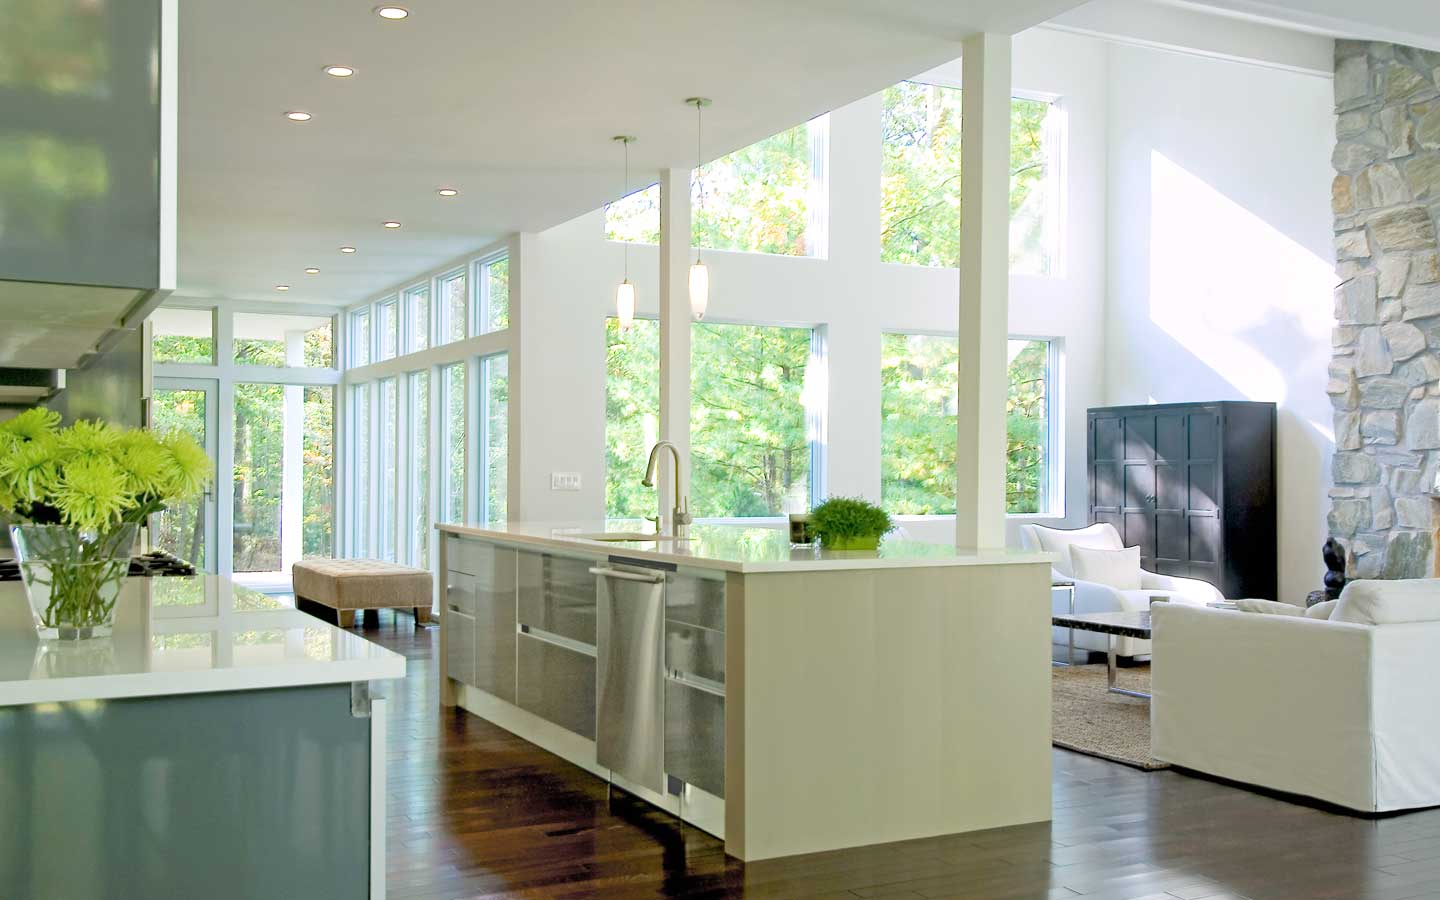 Hampton_Design_Interior_Design_East_Hampton_Kitchen_01.jpg